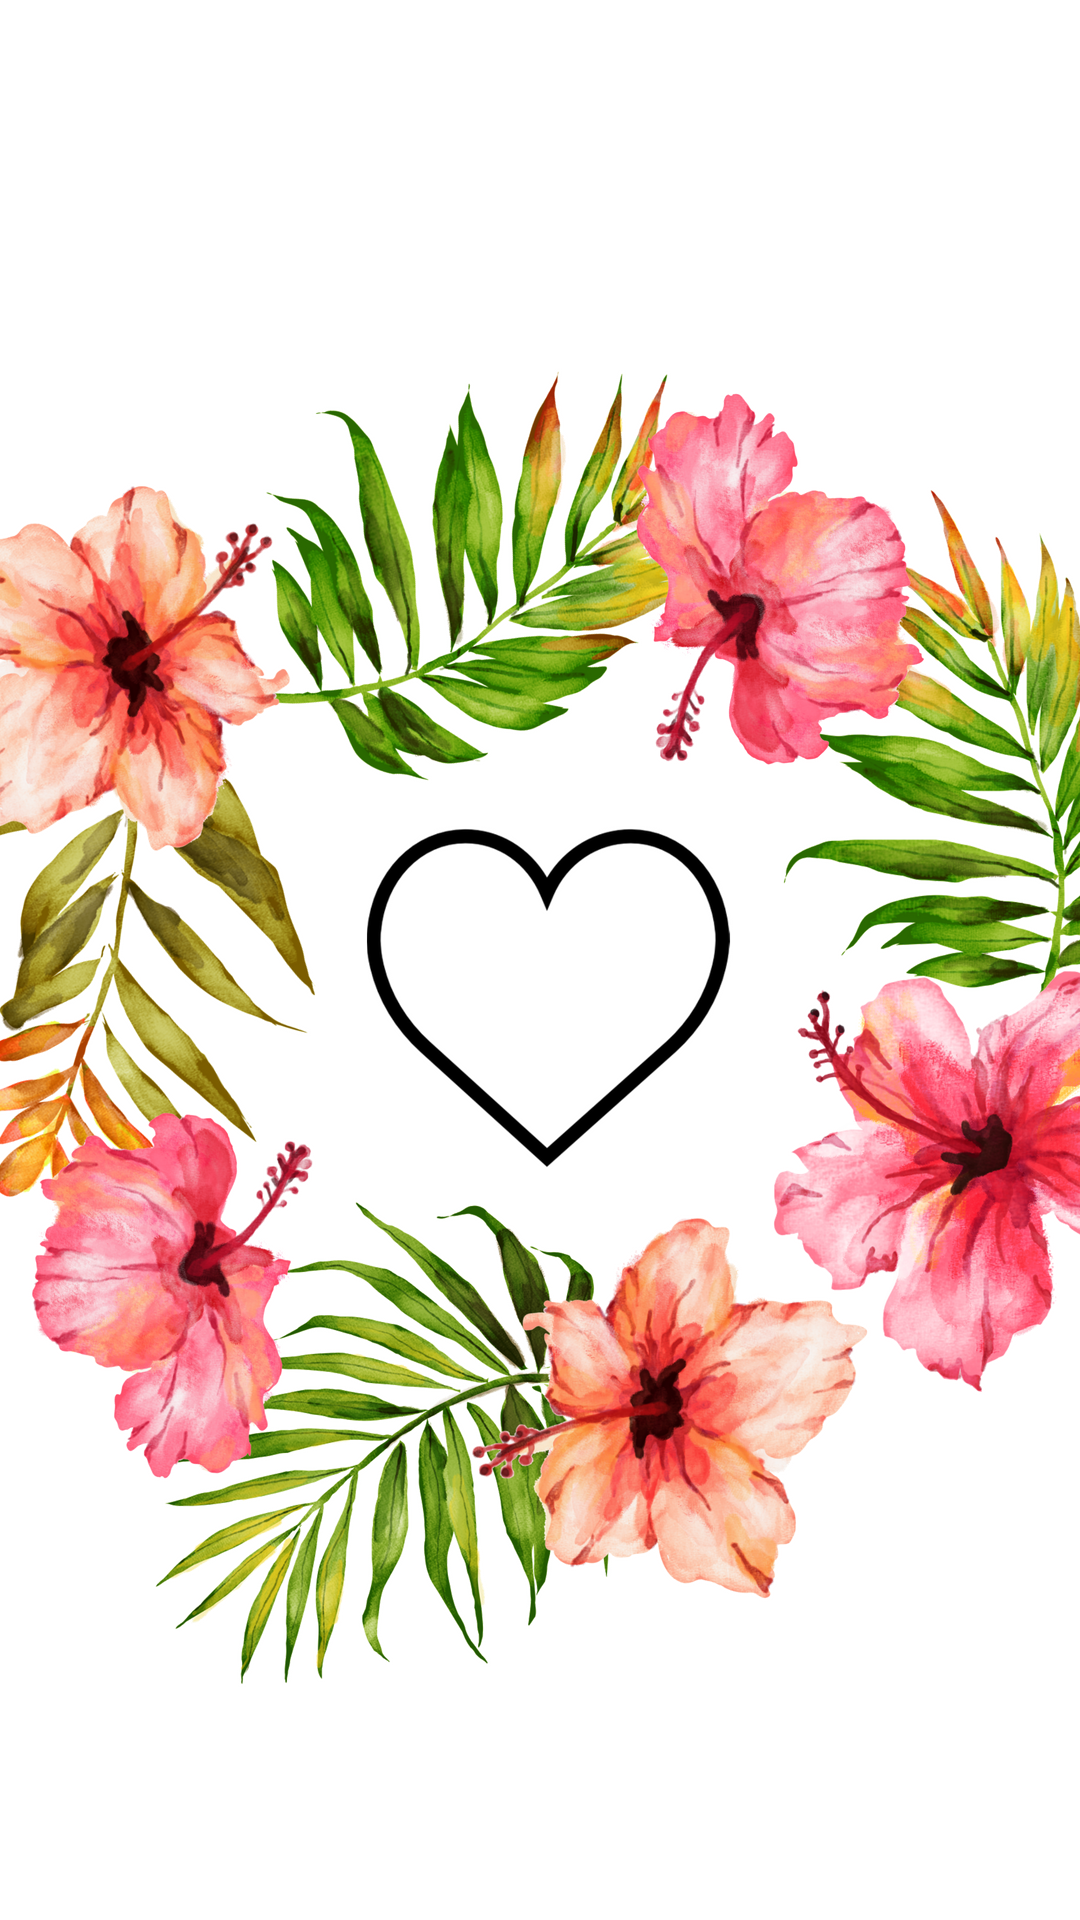 Tropical Instagram Highlight Covers Instagram Icons Design Highlightcovers Tropical Flowers Flowers Instagram Instagram Highlight Icons Instagram Icons